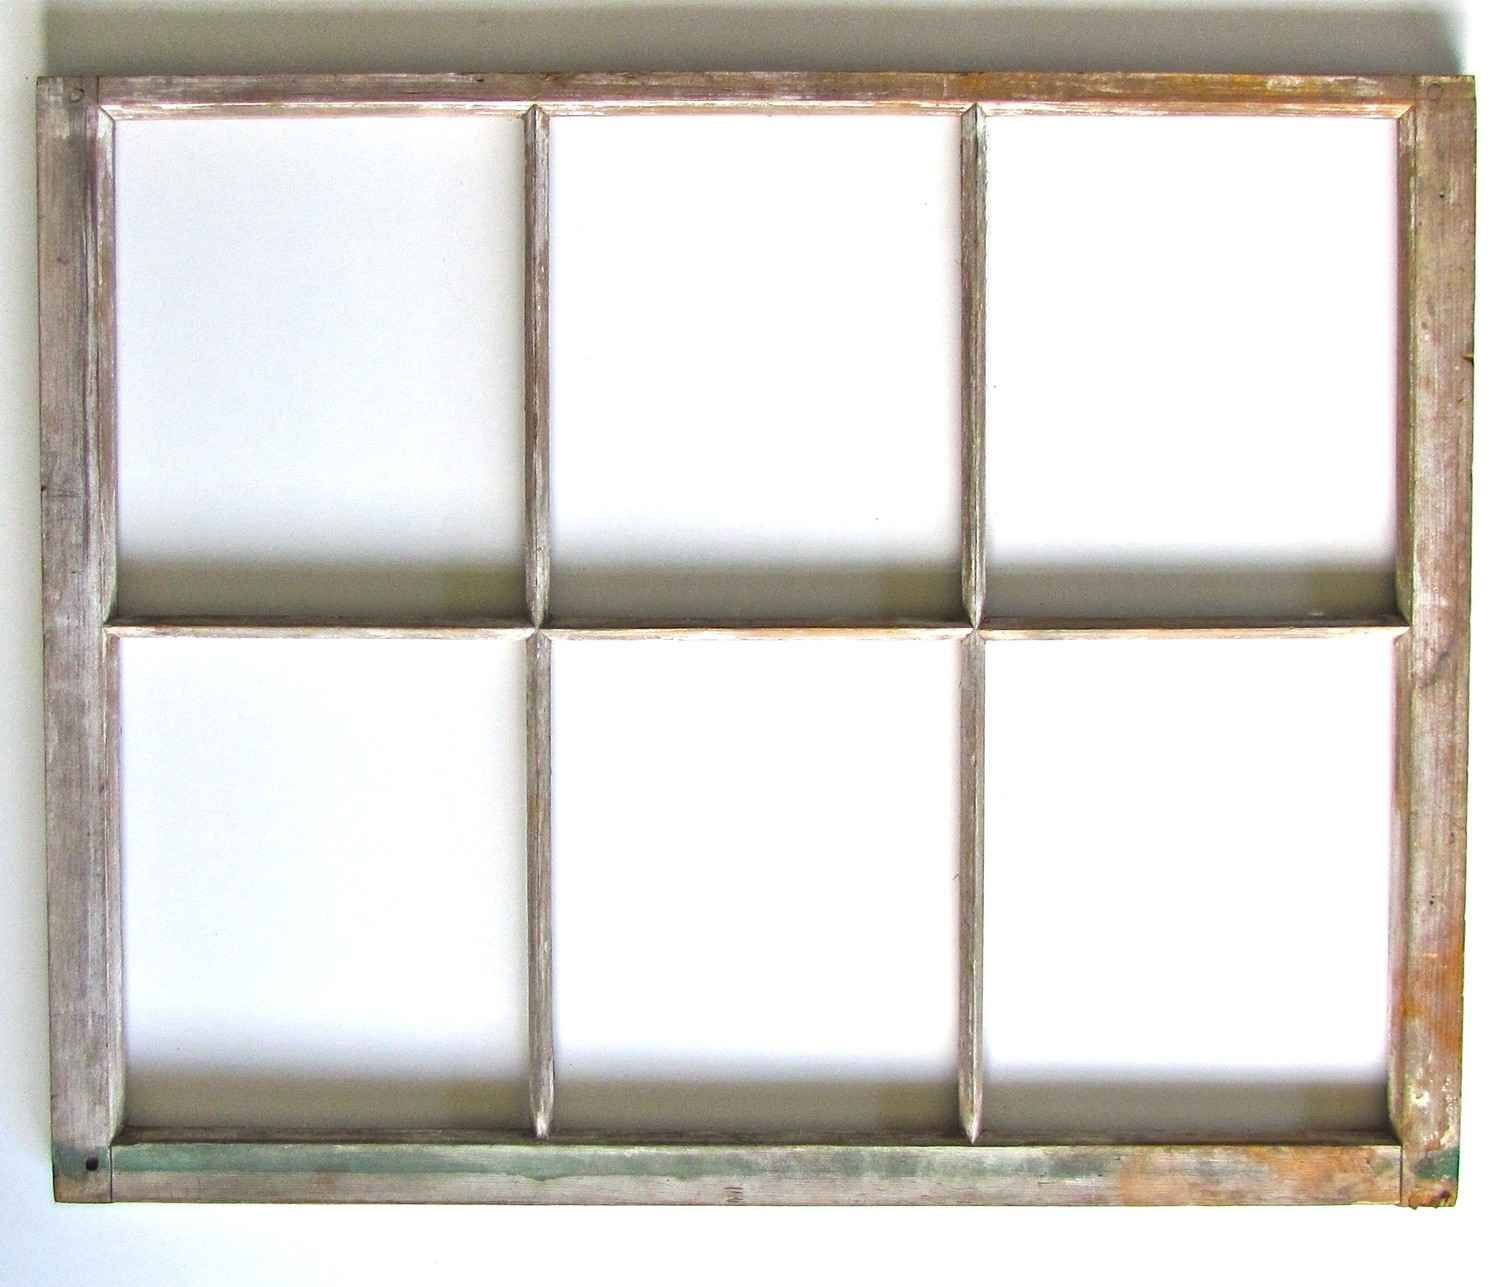 Vintage Six Panels Wooden Window Frames | Decor ...